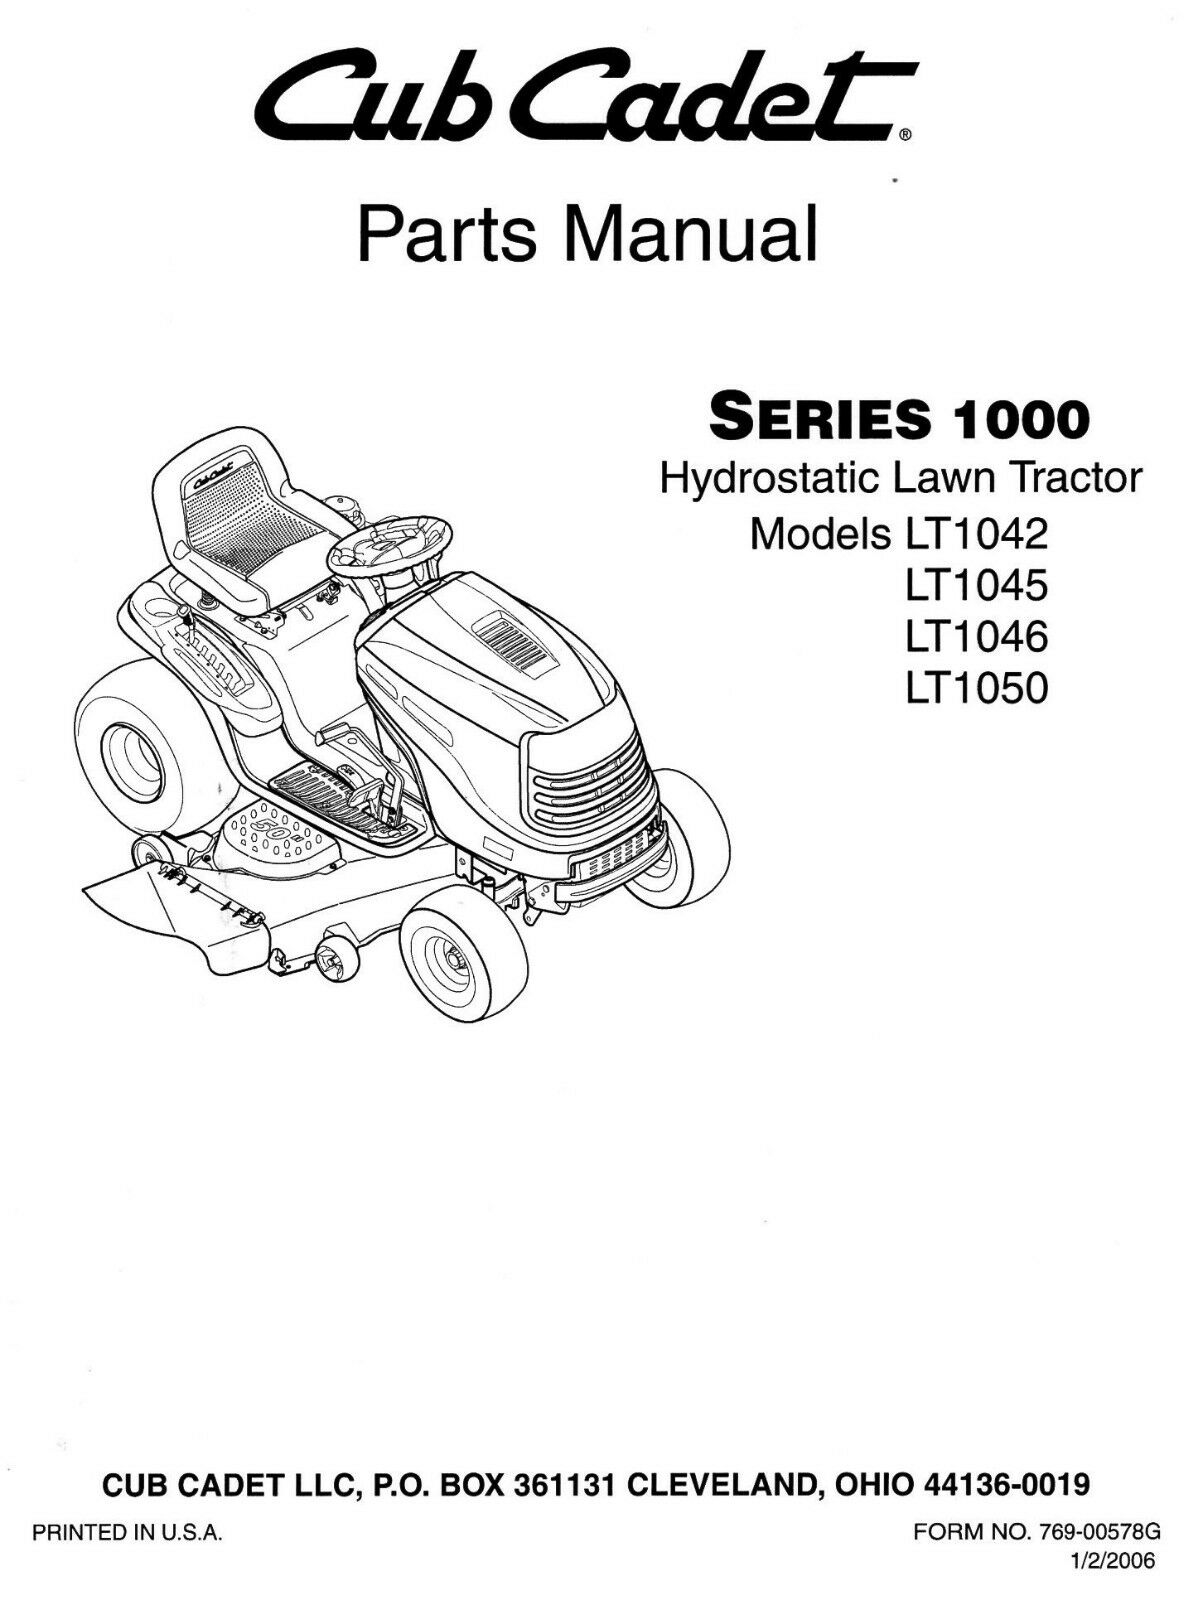 Cub Cadet LT1042 LT1045 LT1046 LT1050 Lawn Tractor / Mower PARTS Manual 1  of 1Only 3 available ...